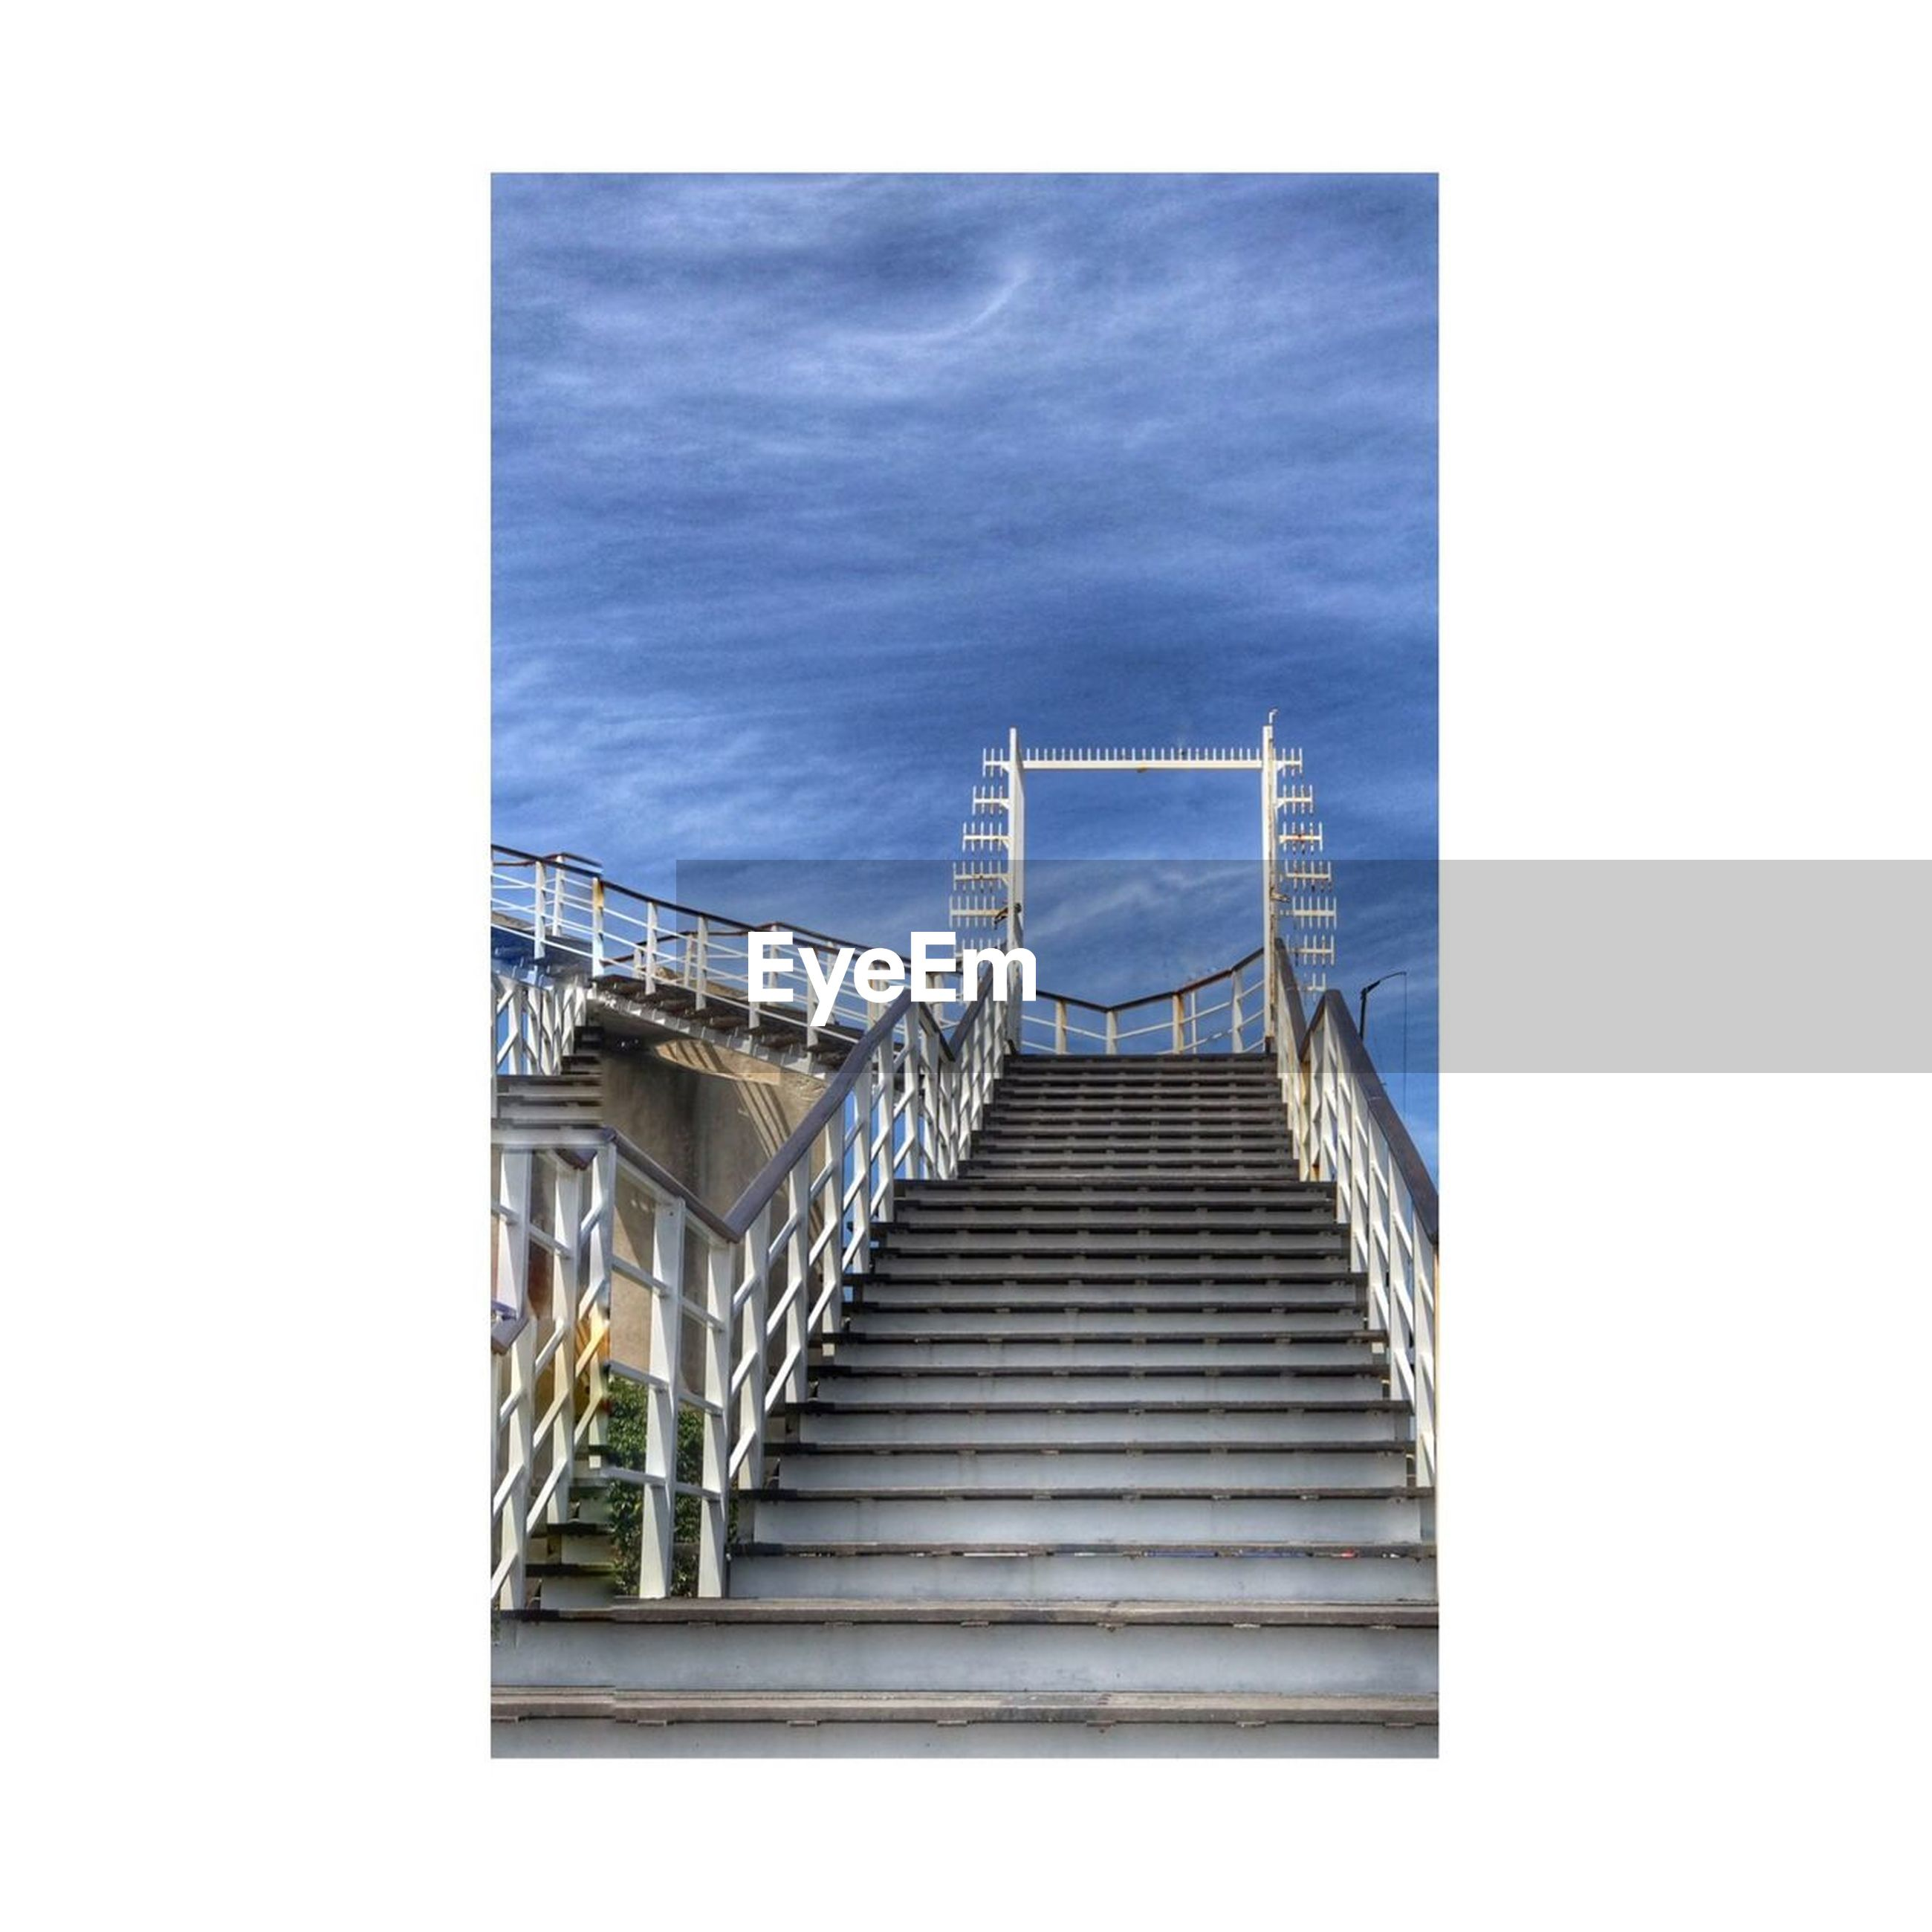 staircase, steps, steps and staircases, railing, stairs, built structure, architecture, no people, day, sky, hand rail, outdoors